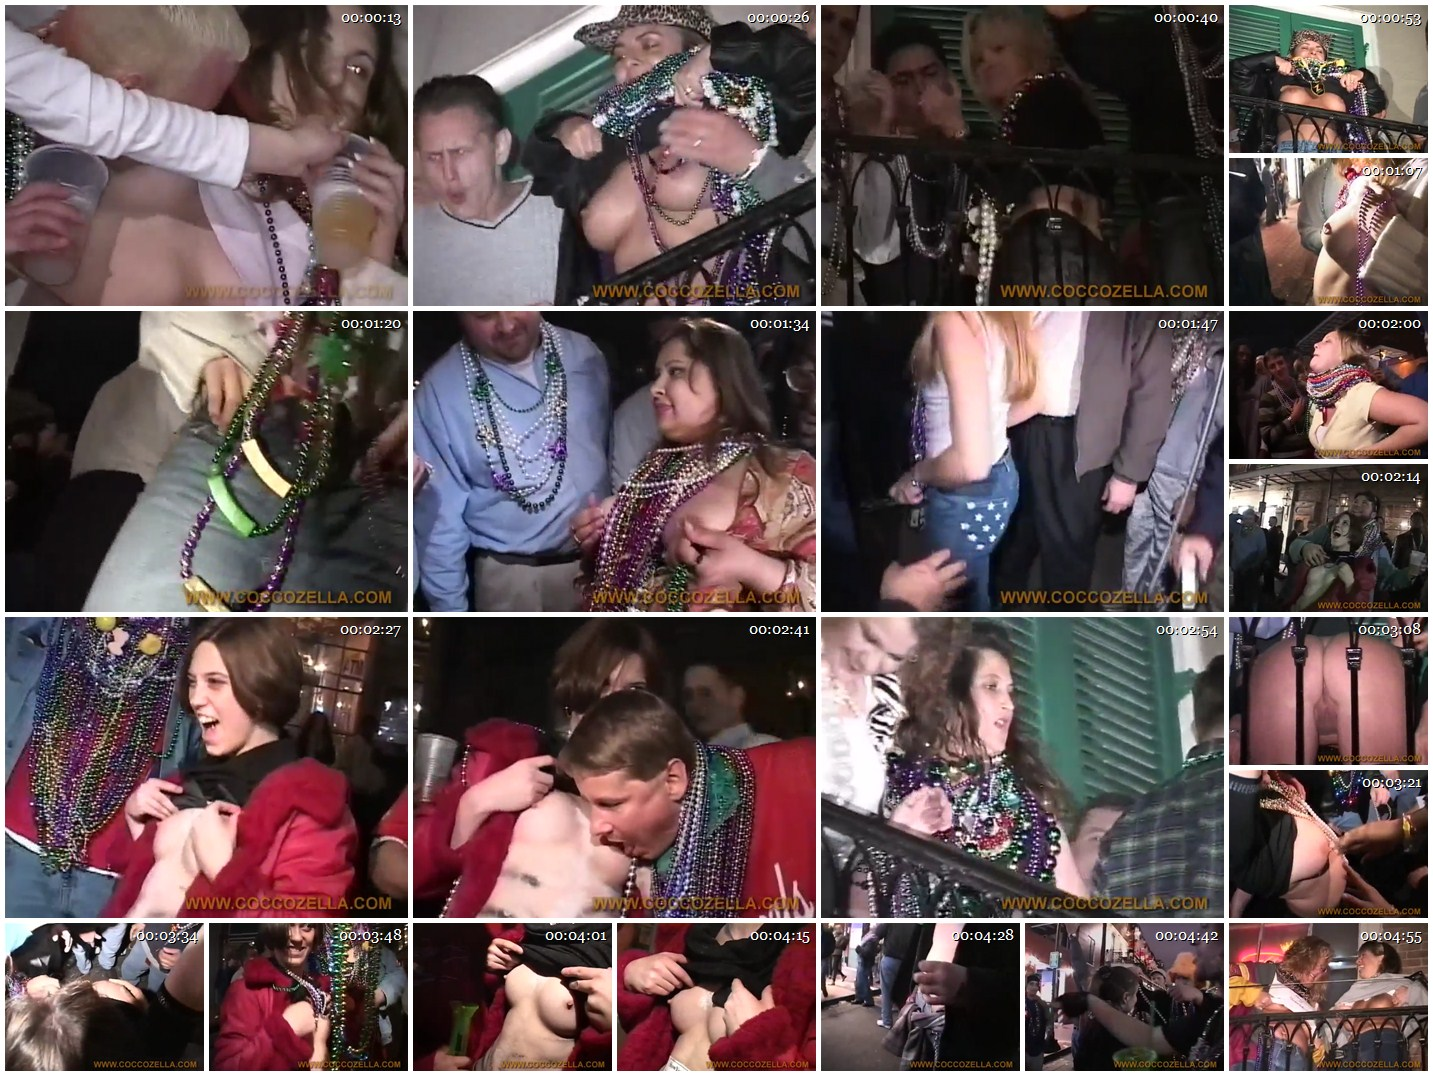 1011-5is-mardi-gras-122-preview.mp4,